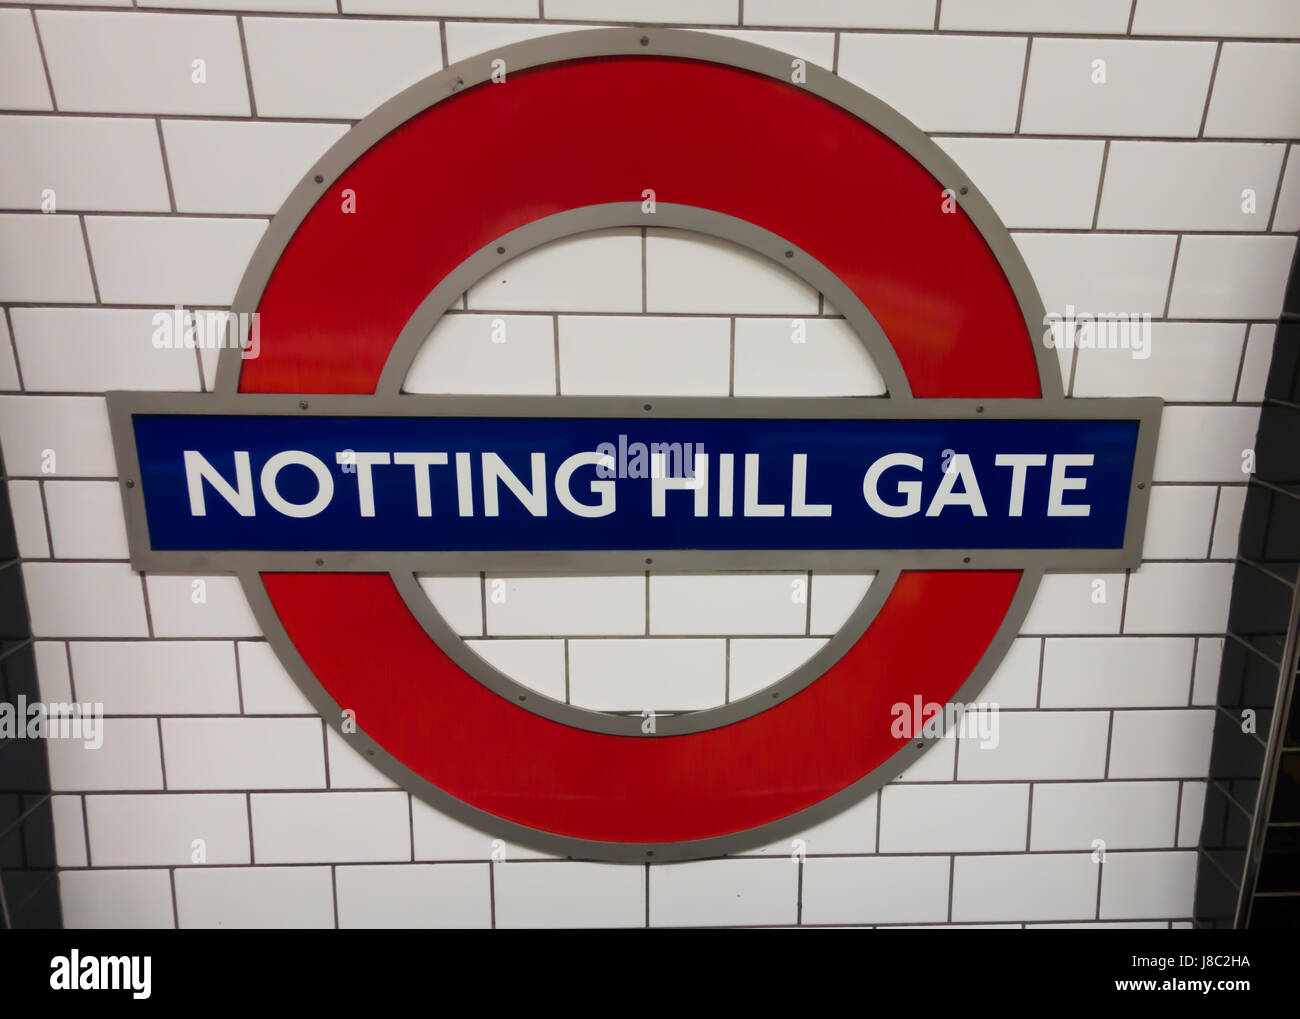 Close up view of Notting hill Gate logo - Stock Image